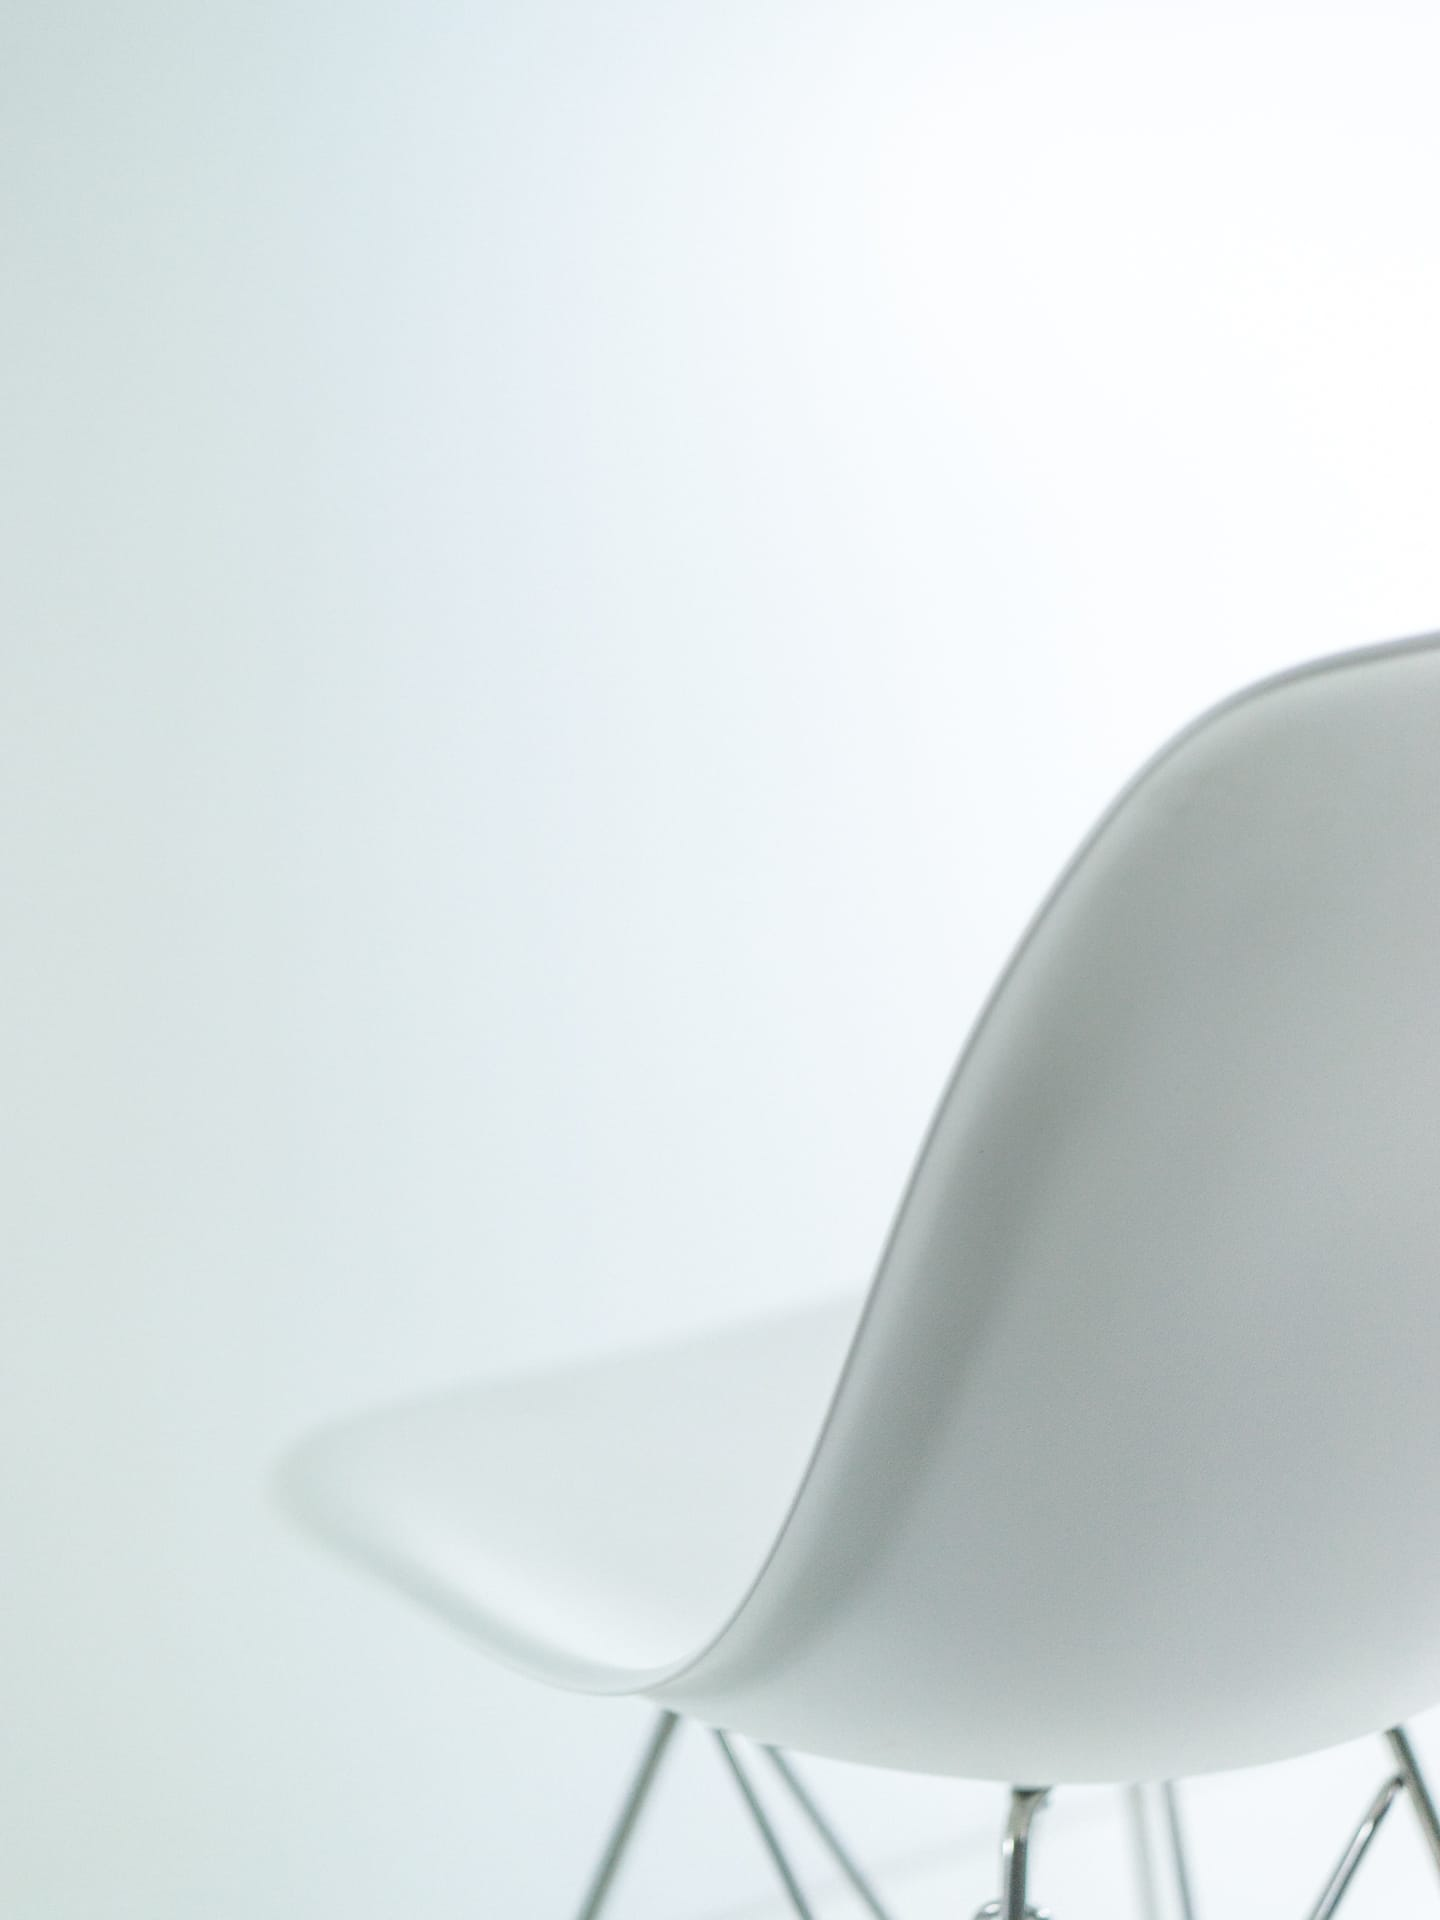 Herman Miller Eames Molded Plastic Chair a review of the herman miller eames molded plastic side chair